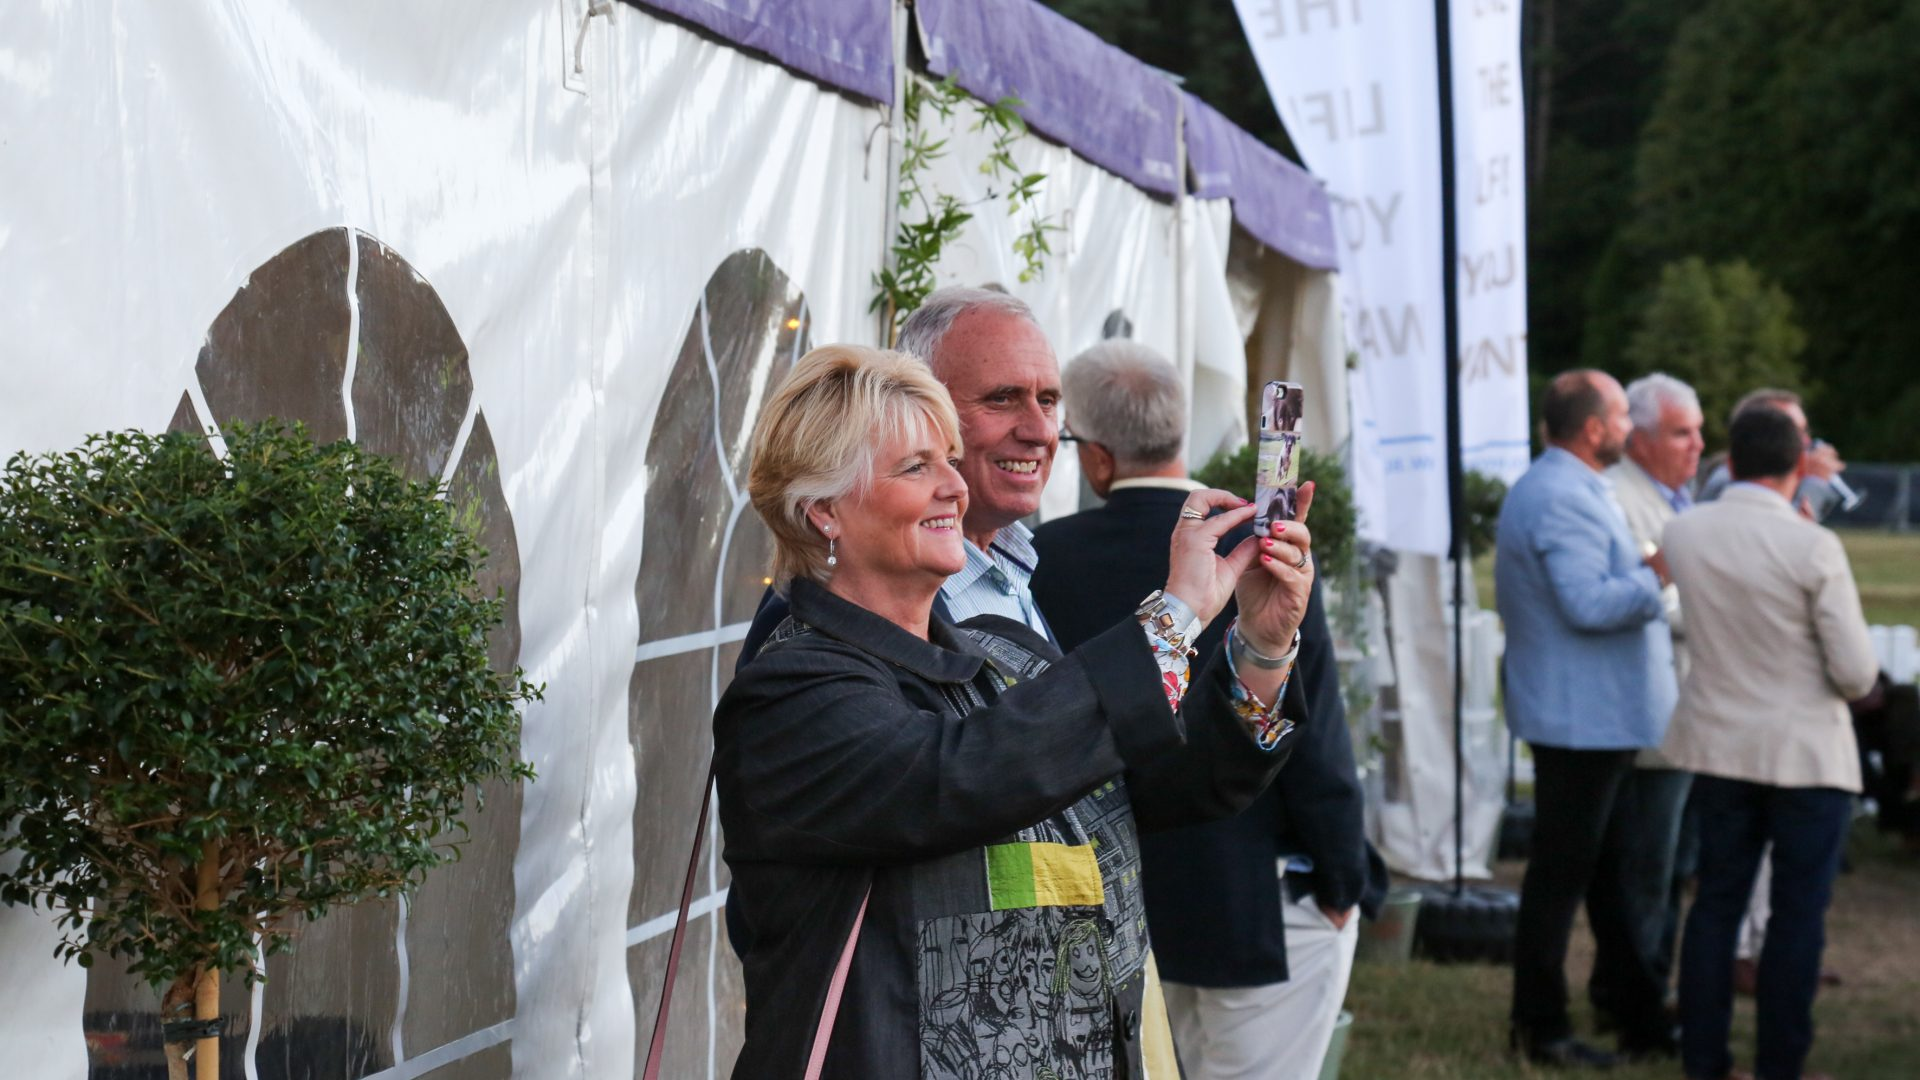 Two guests take a photo in front of the Corporate Guests marquee at the BSO Proms in the Park, which aims to enterain and impress other guests.